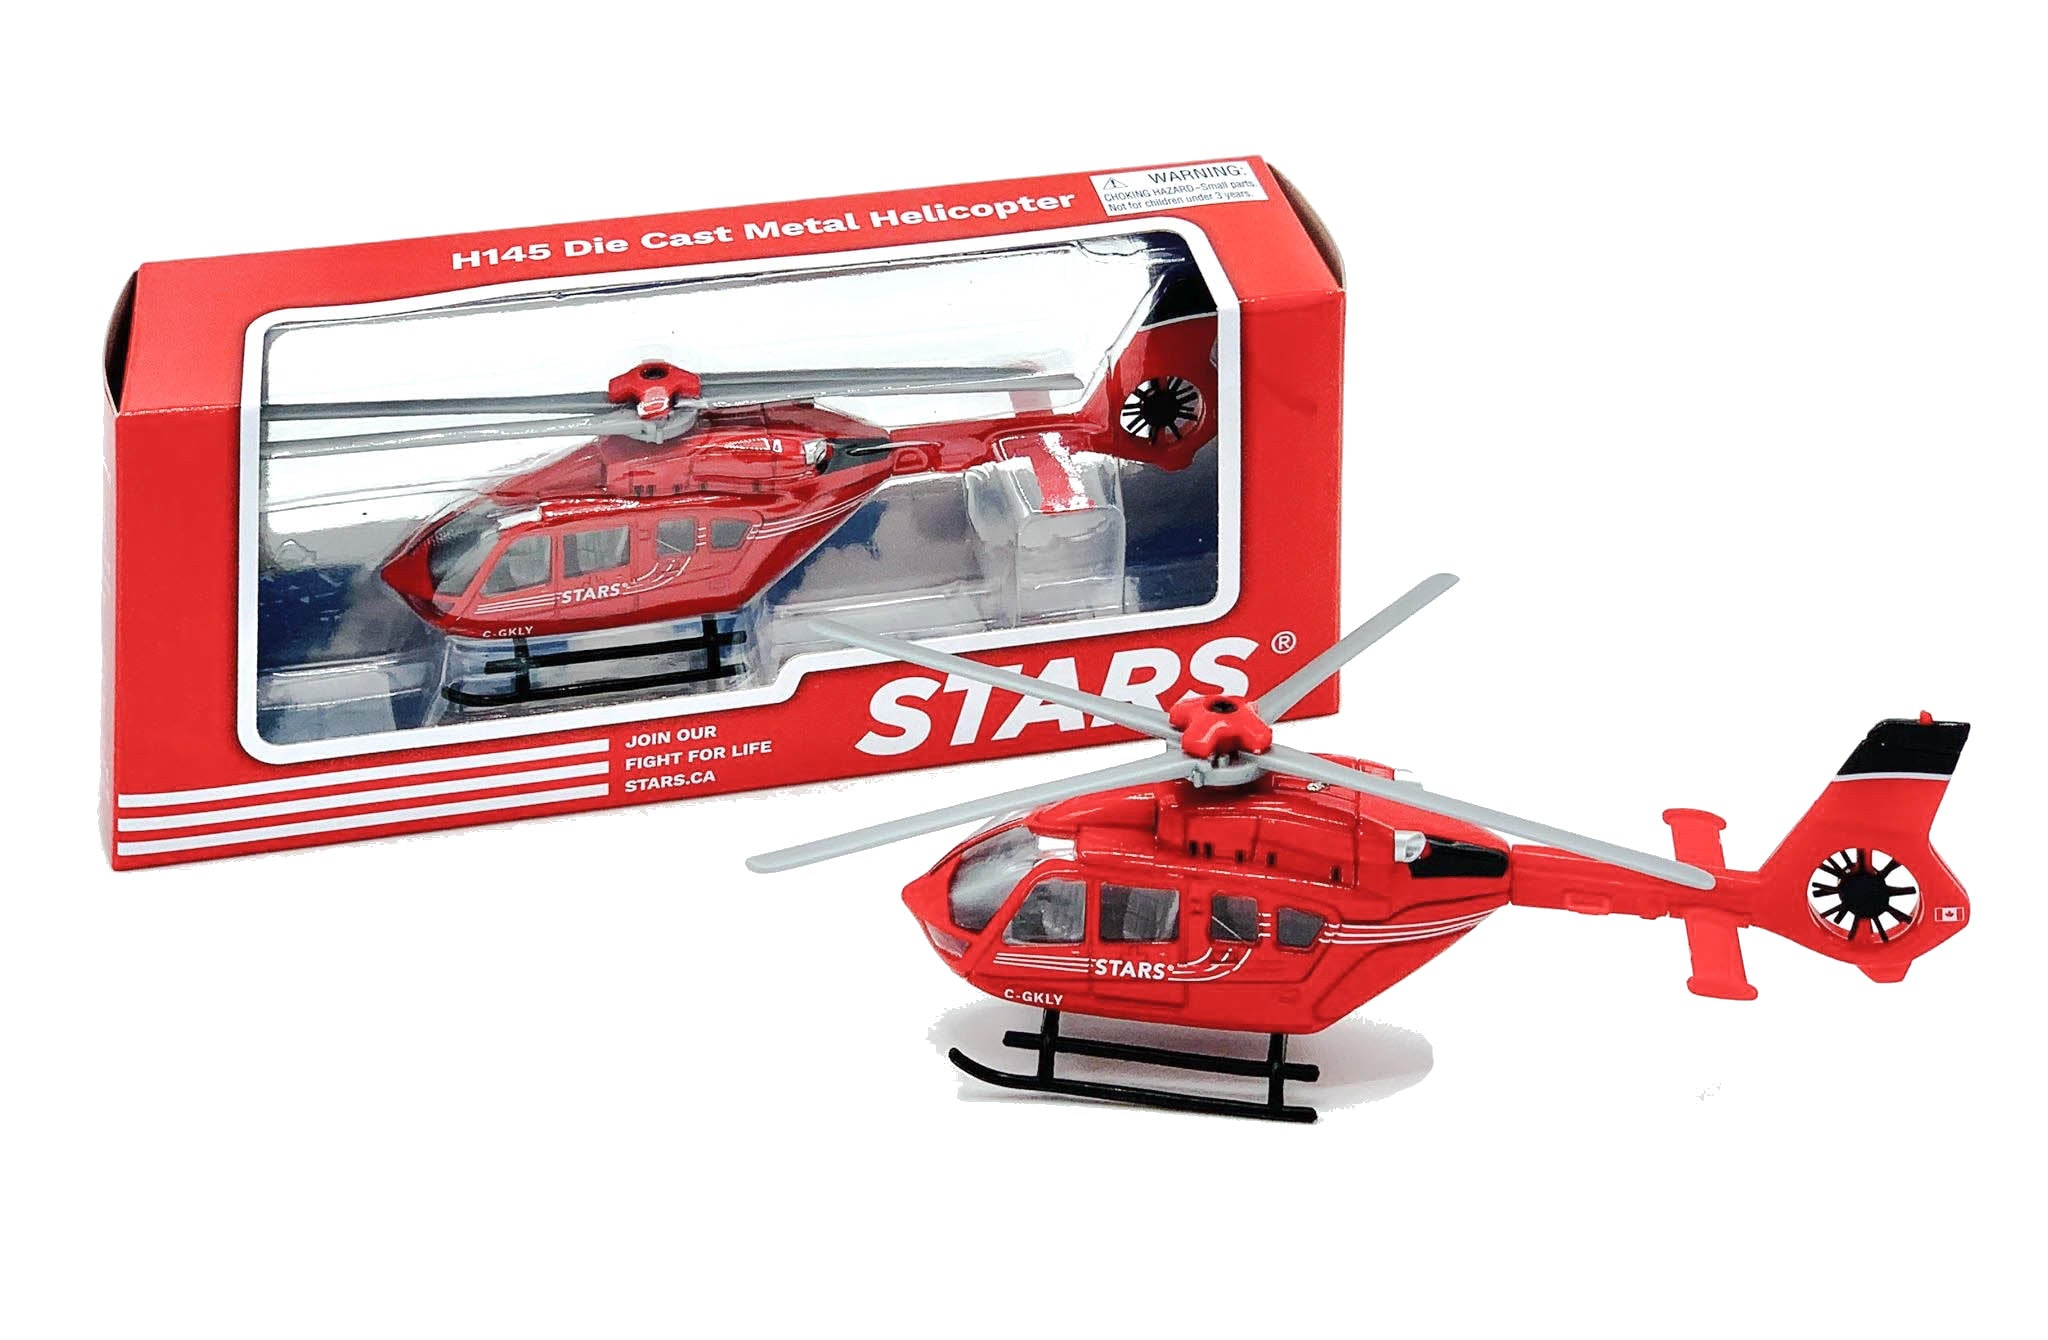 H145 Toy Helicopter